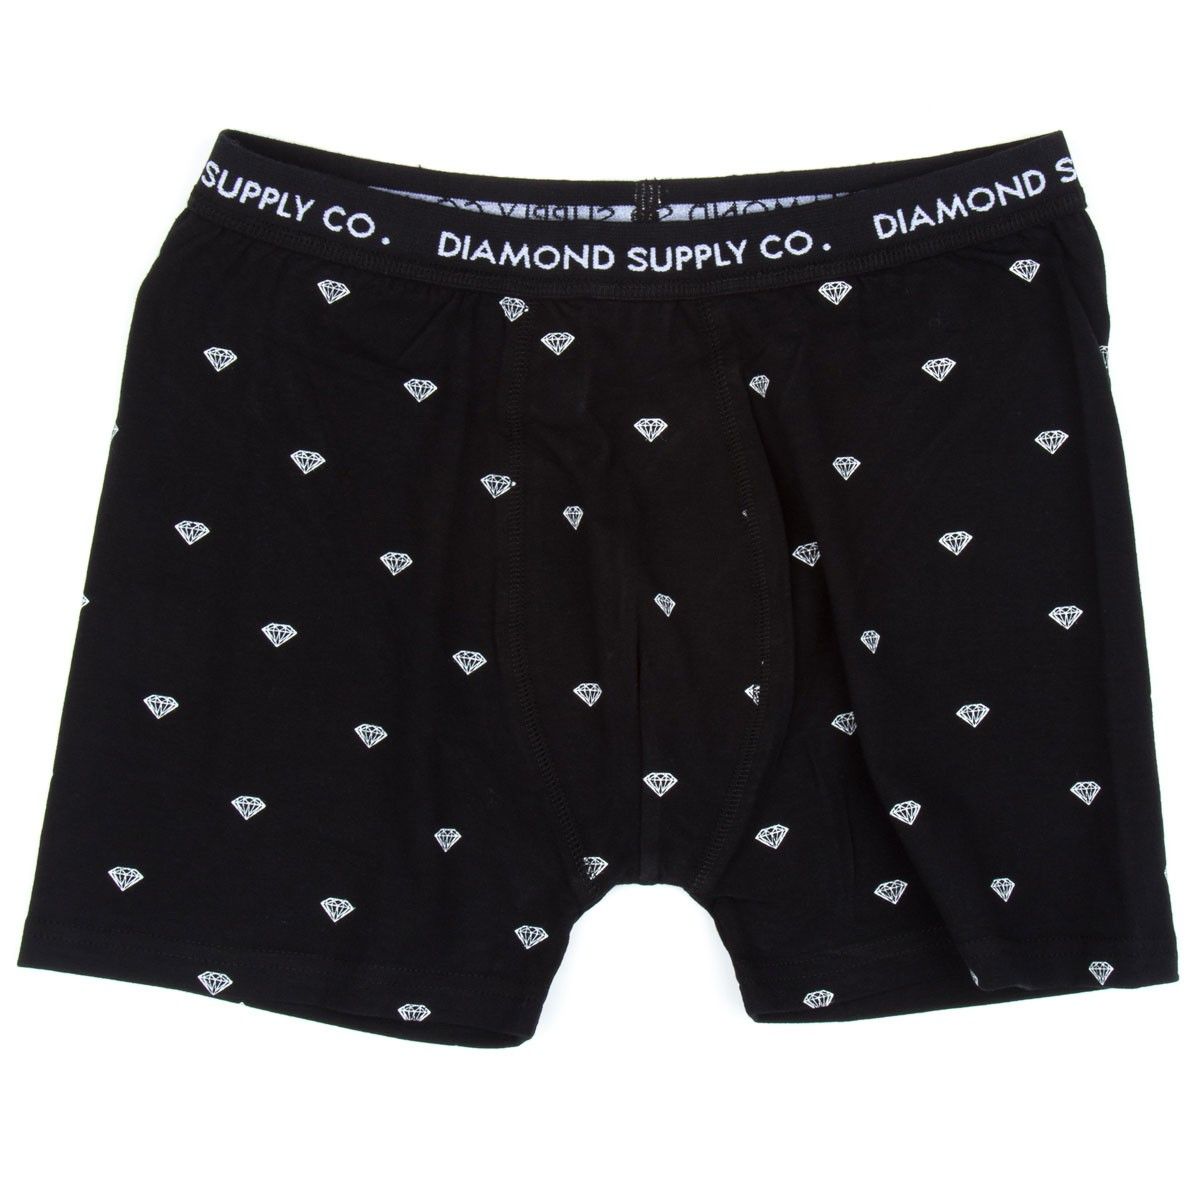 Diamond Supply Co. Brilliant Knit Briefs - Black